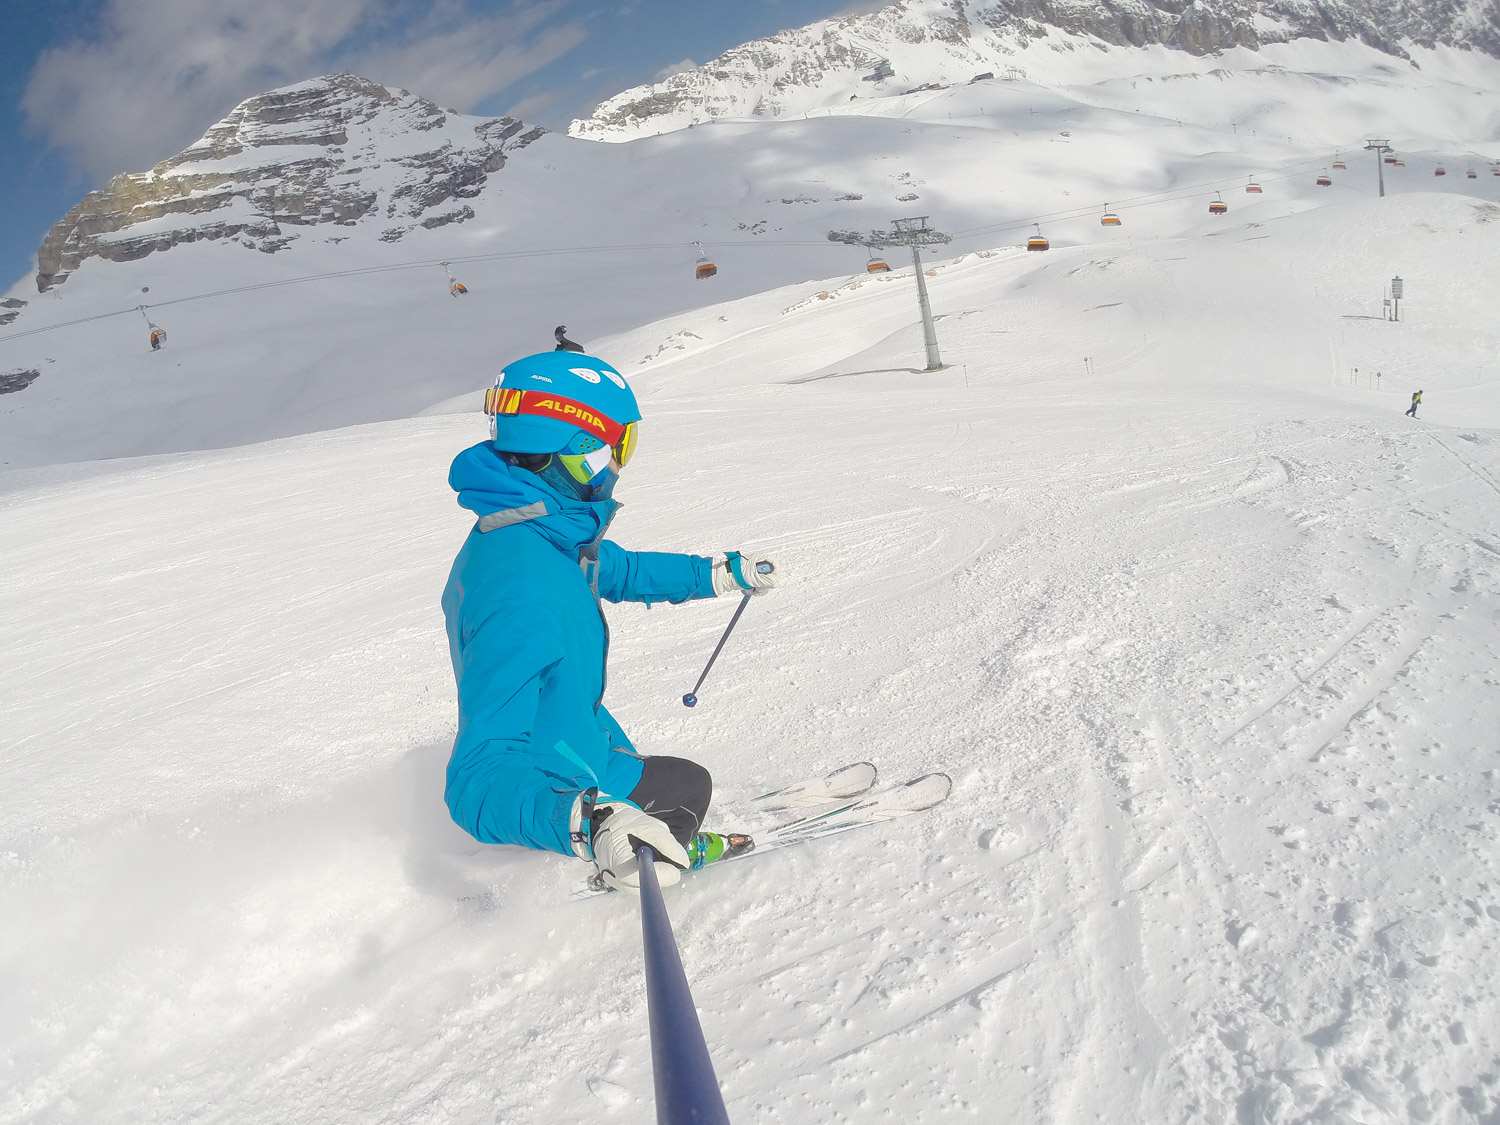 Skiing in Germany - great way to cross-train